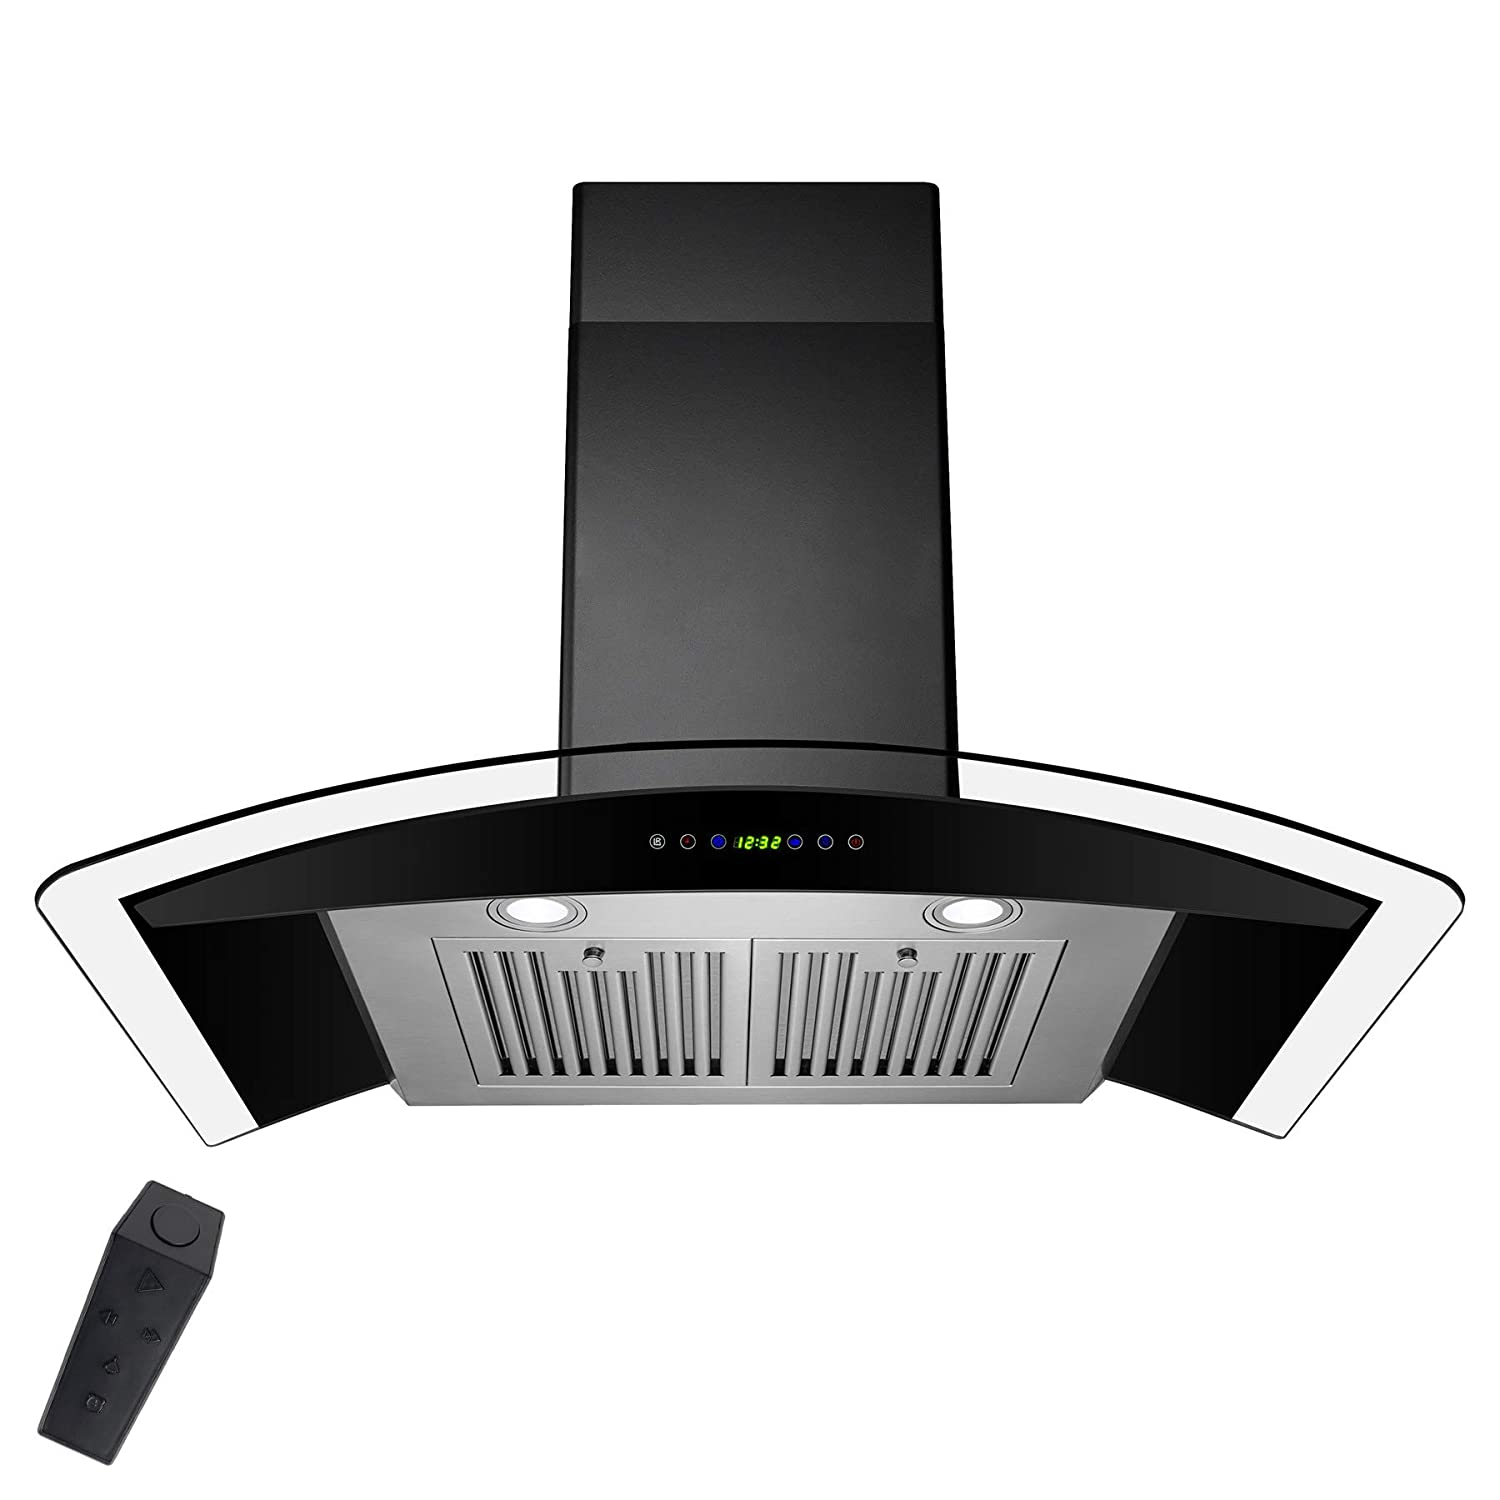 AKDY 36' Stainless Steel Tempered Glass Wall Mount Range Hood With Remote Control Touch Button Control